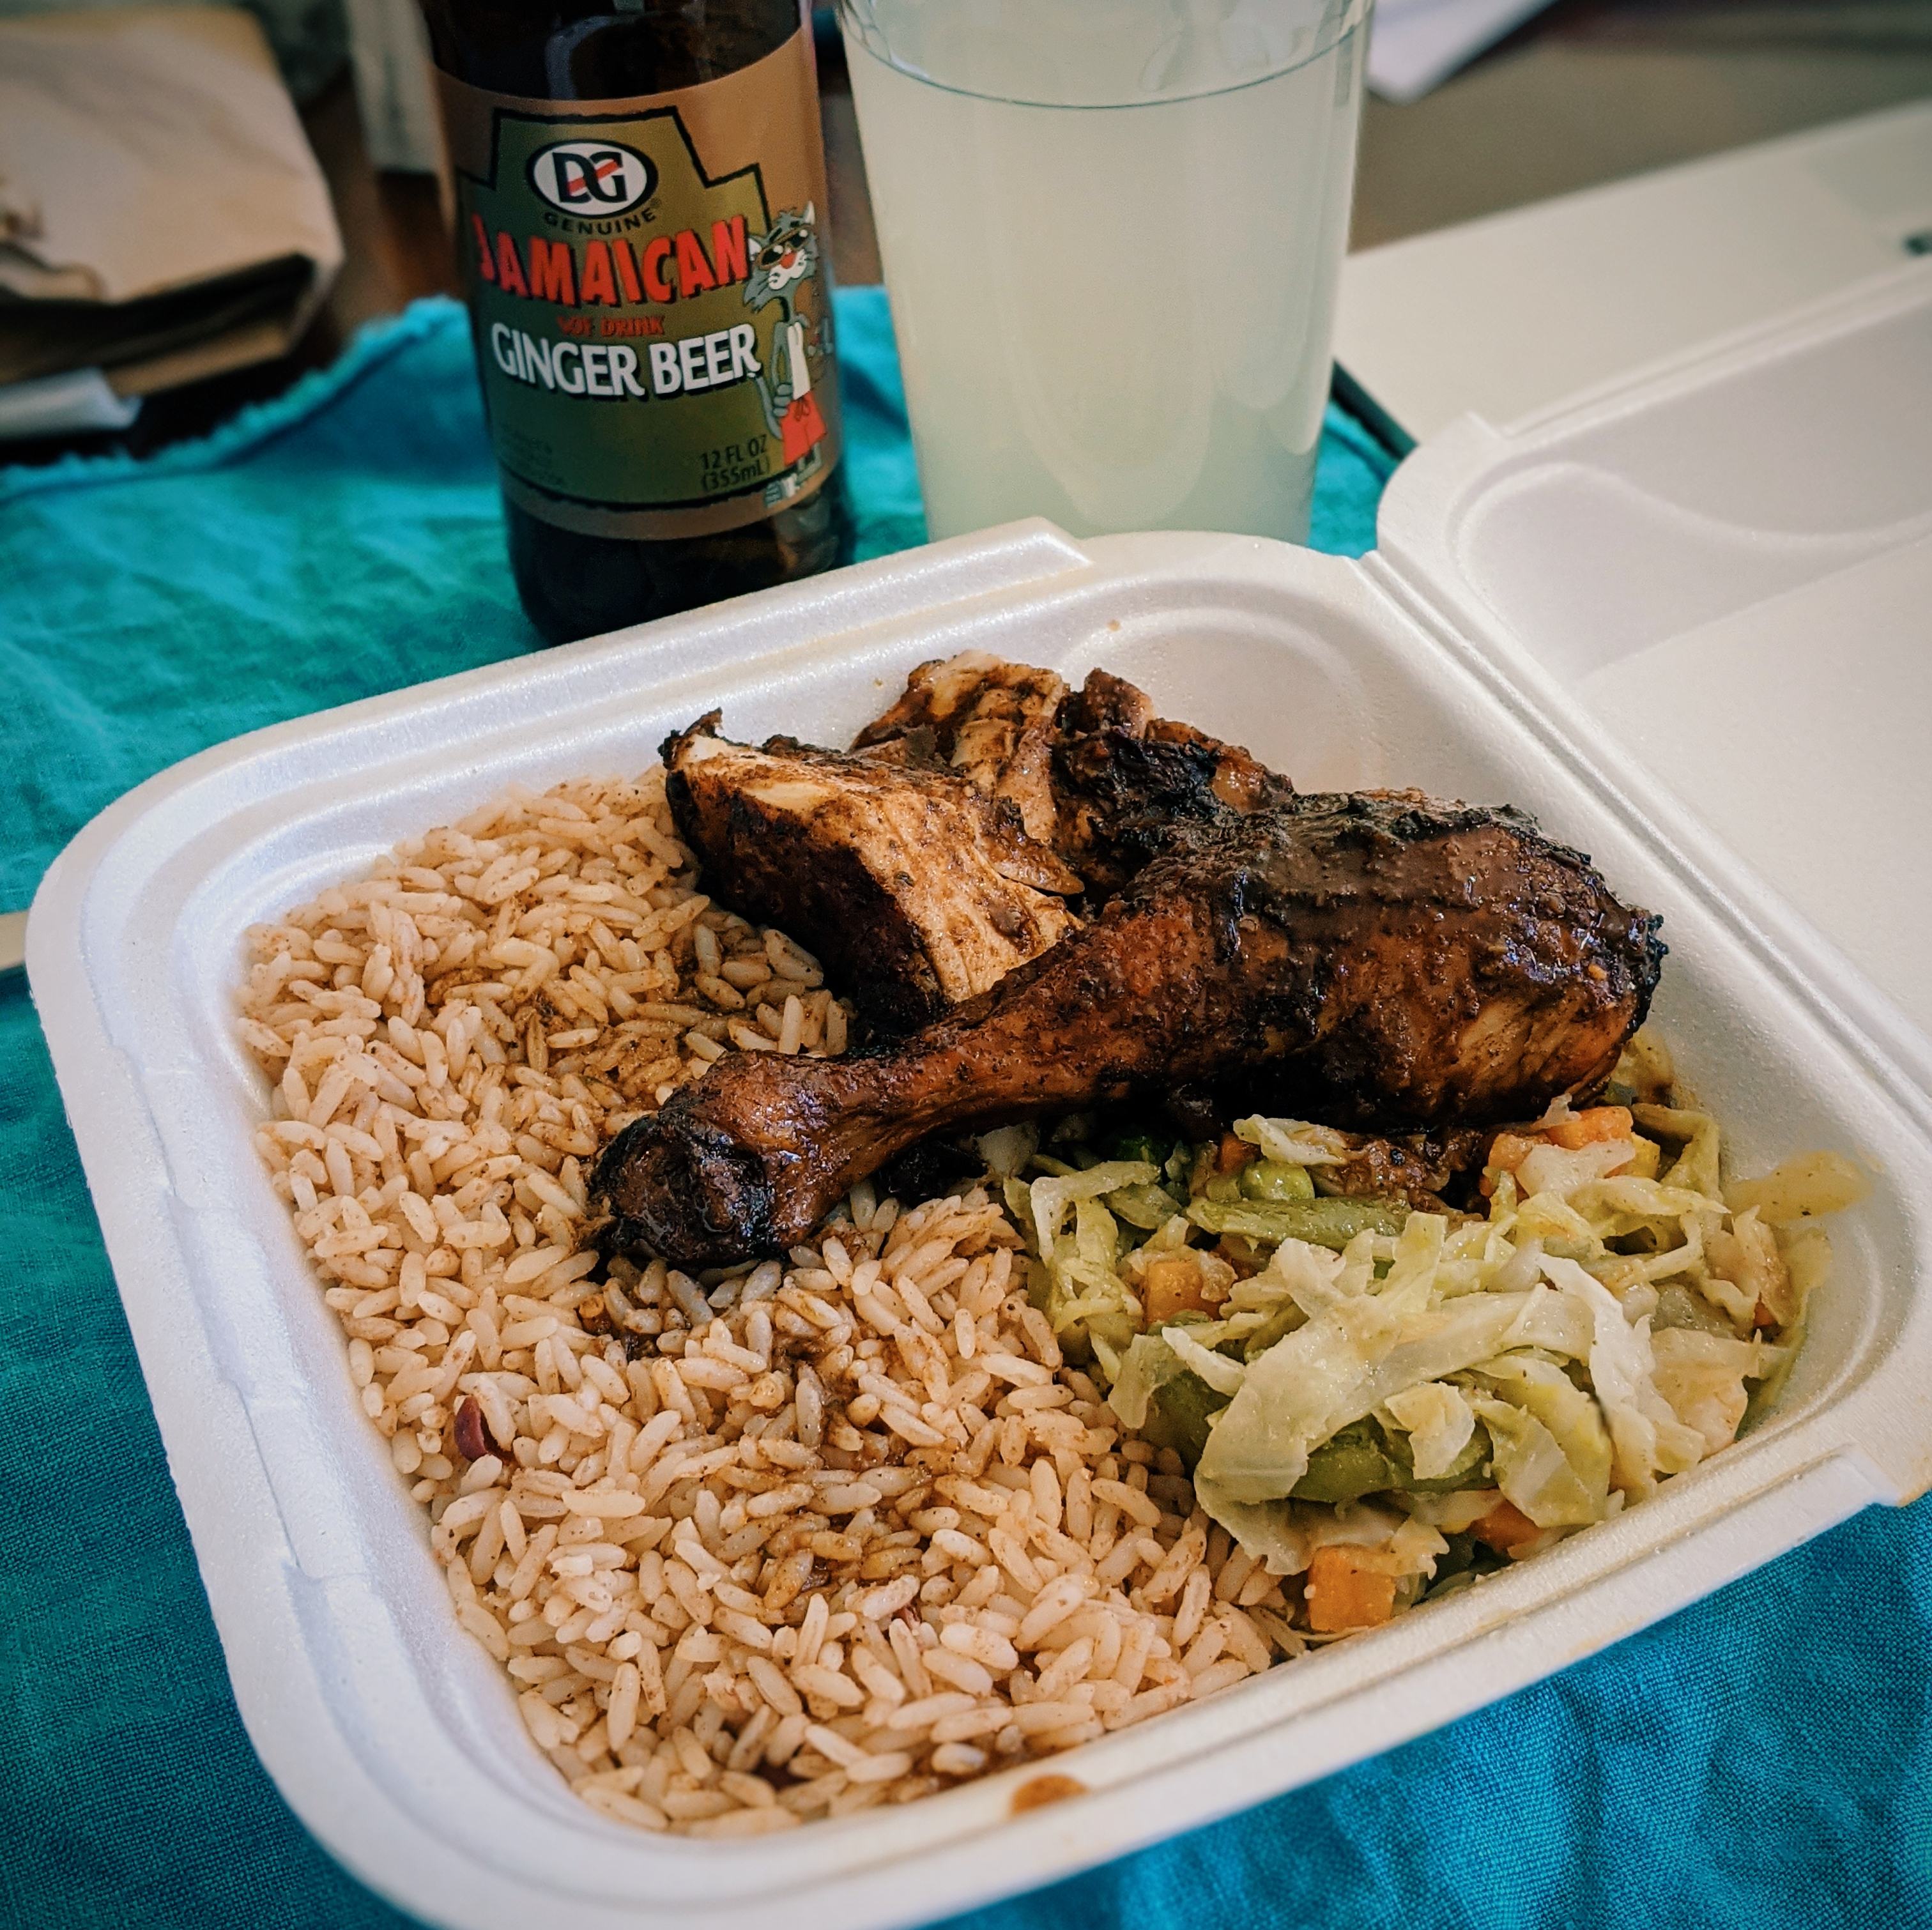 Jerk chicken and rice in takeout container